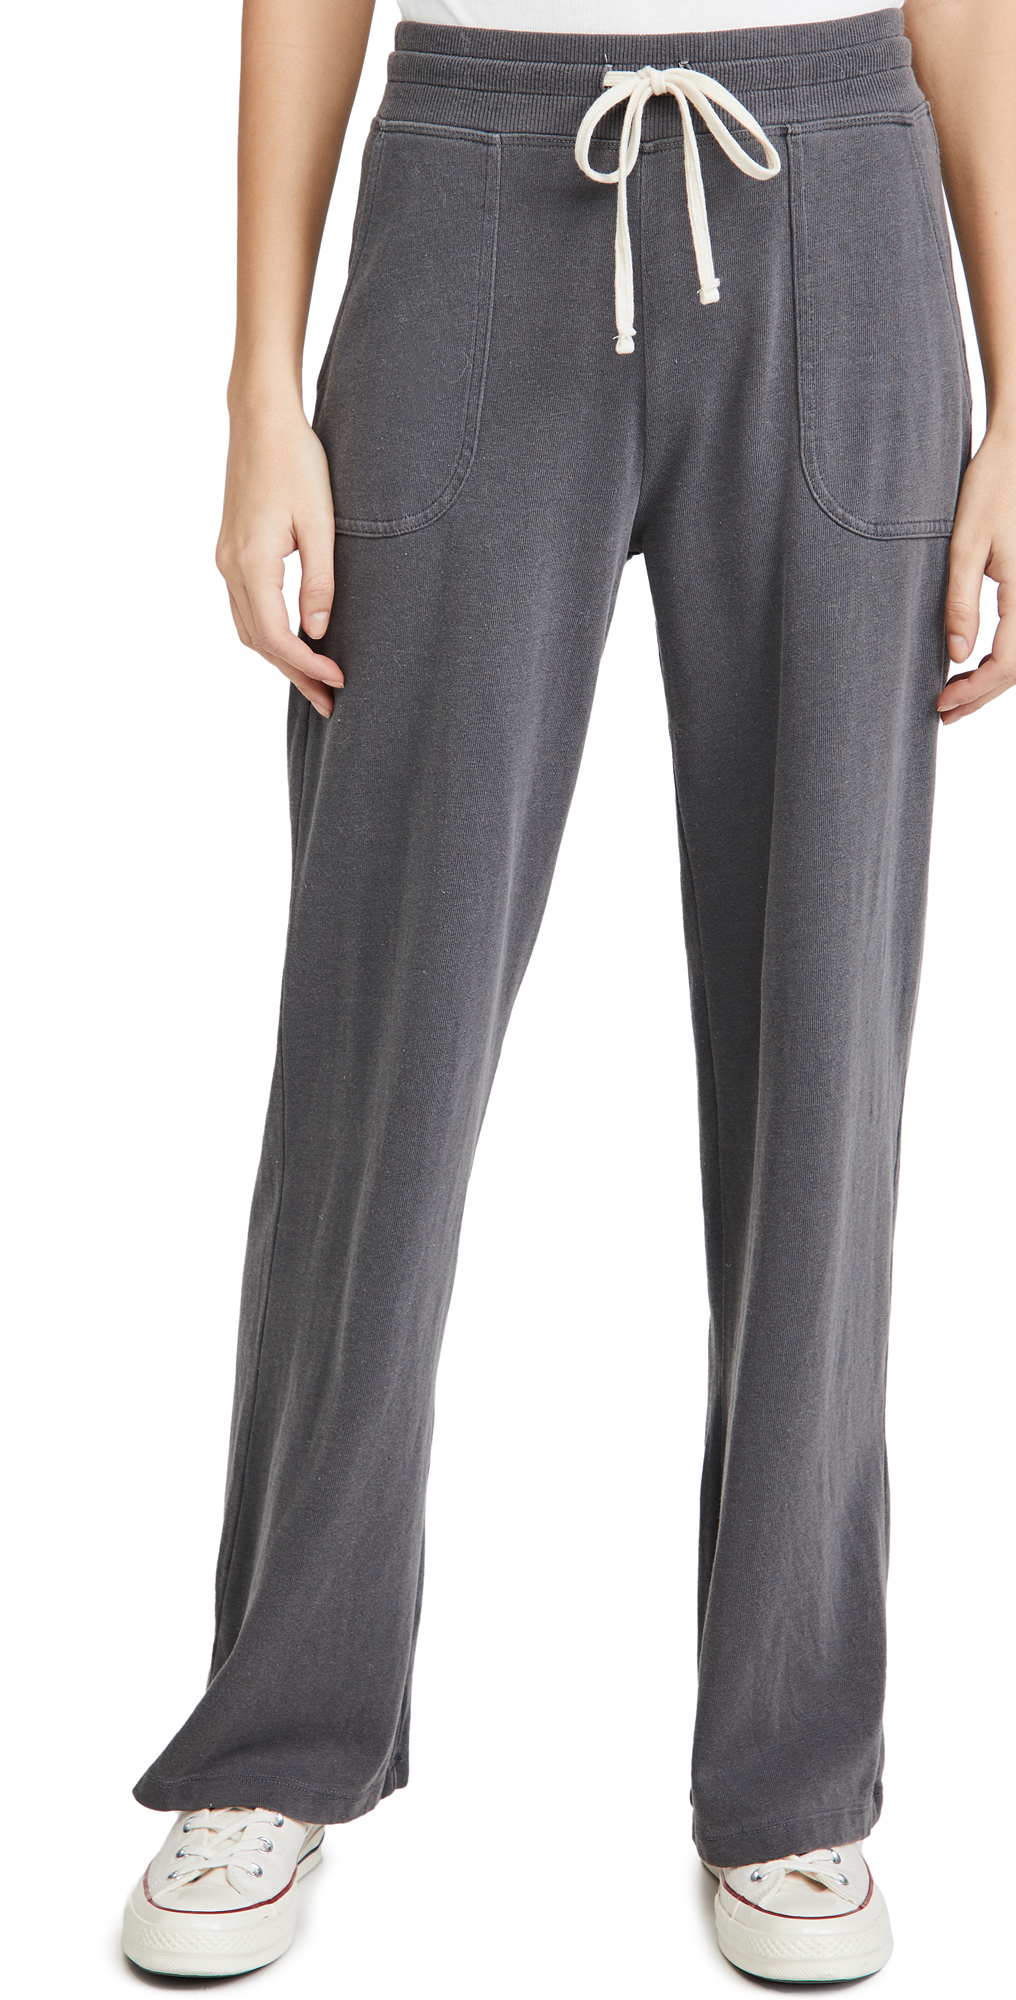 SUNDRY Straight Sweatpants